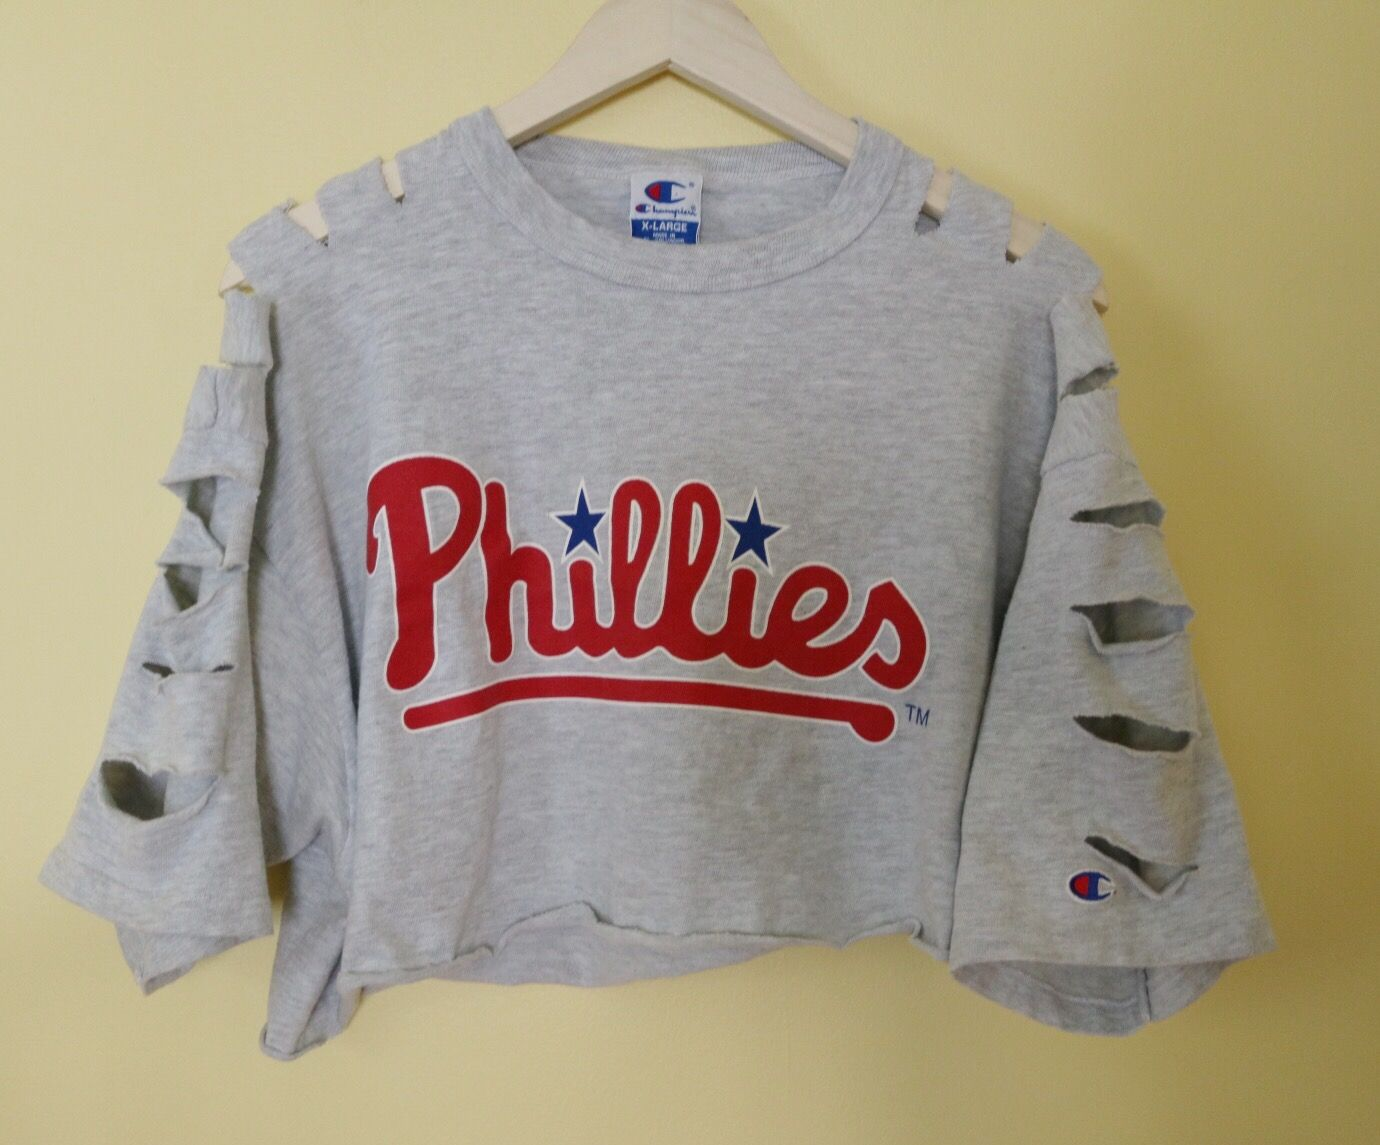 c4ef2b45cc8 Phillies Crop Top. DIY crop top. Edgy outfit. Edgy fashion. Grunge ...